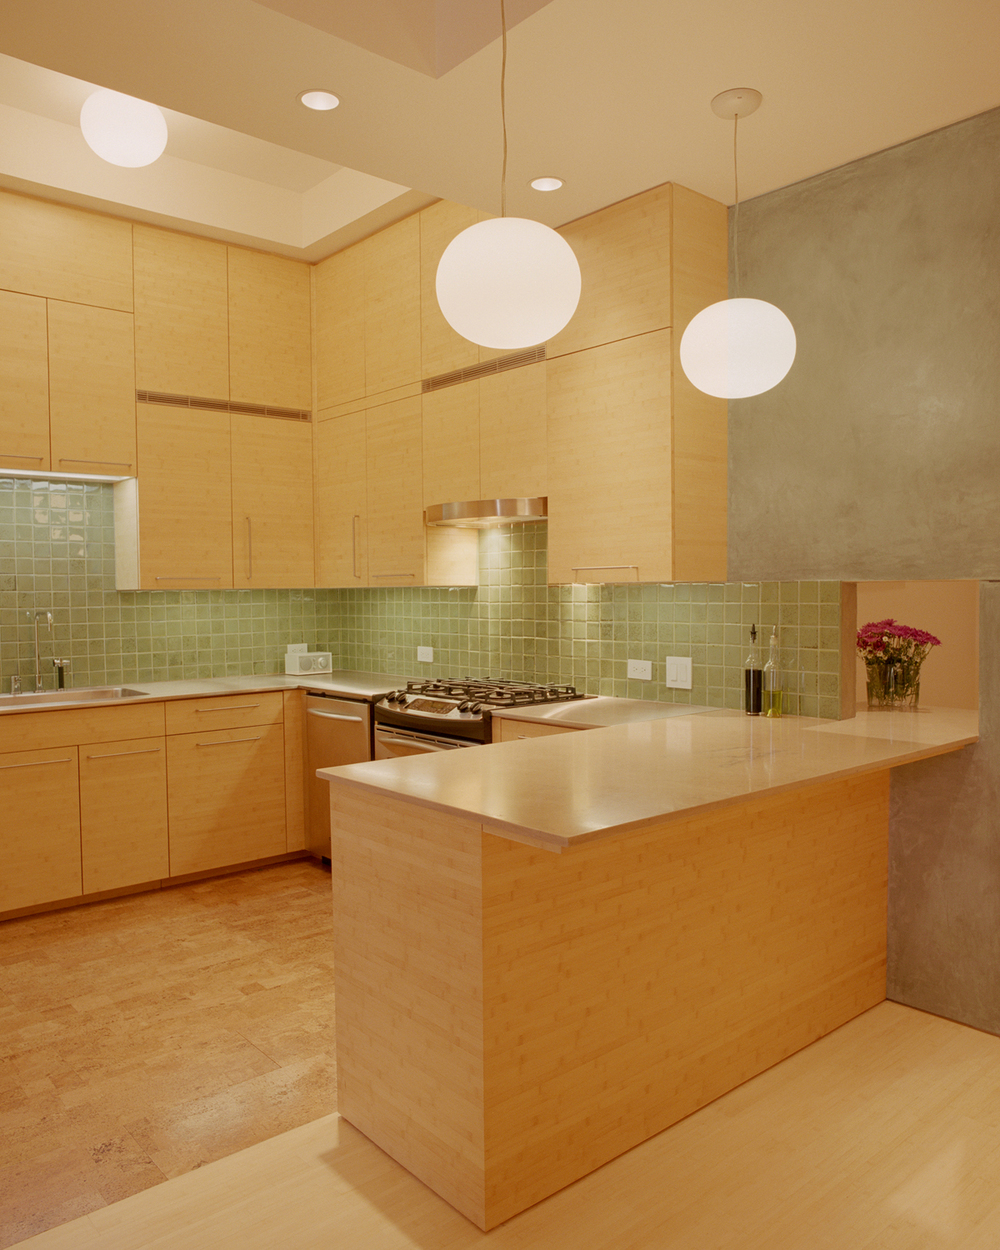 02_HSq-Kitchen.jpg